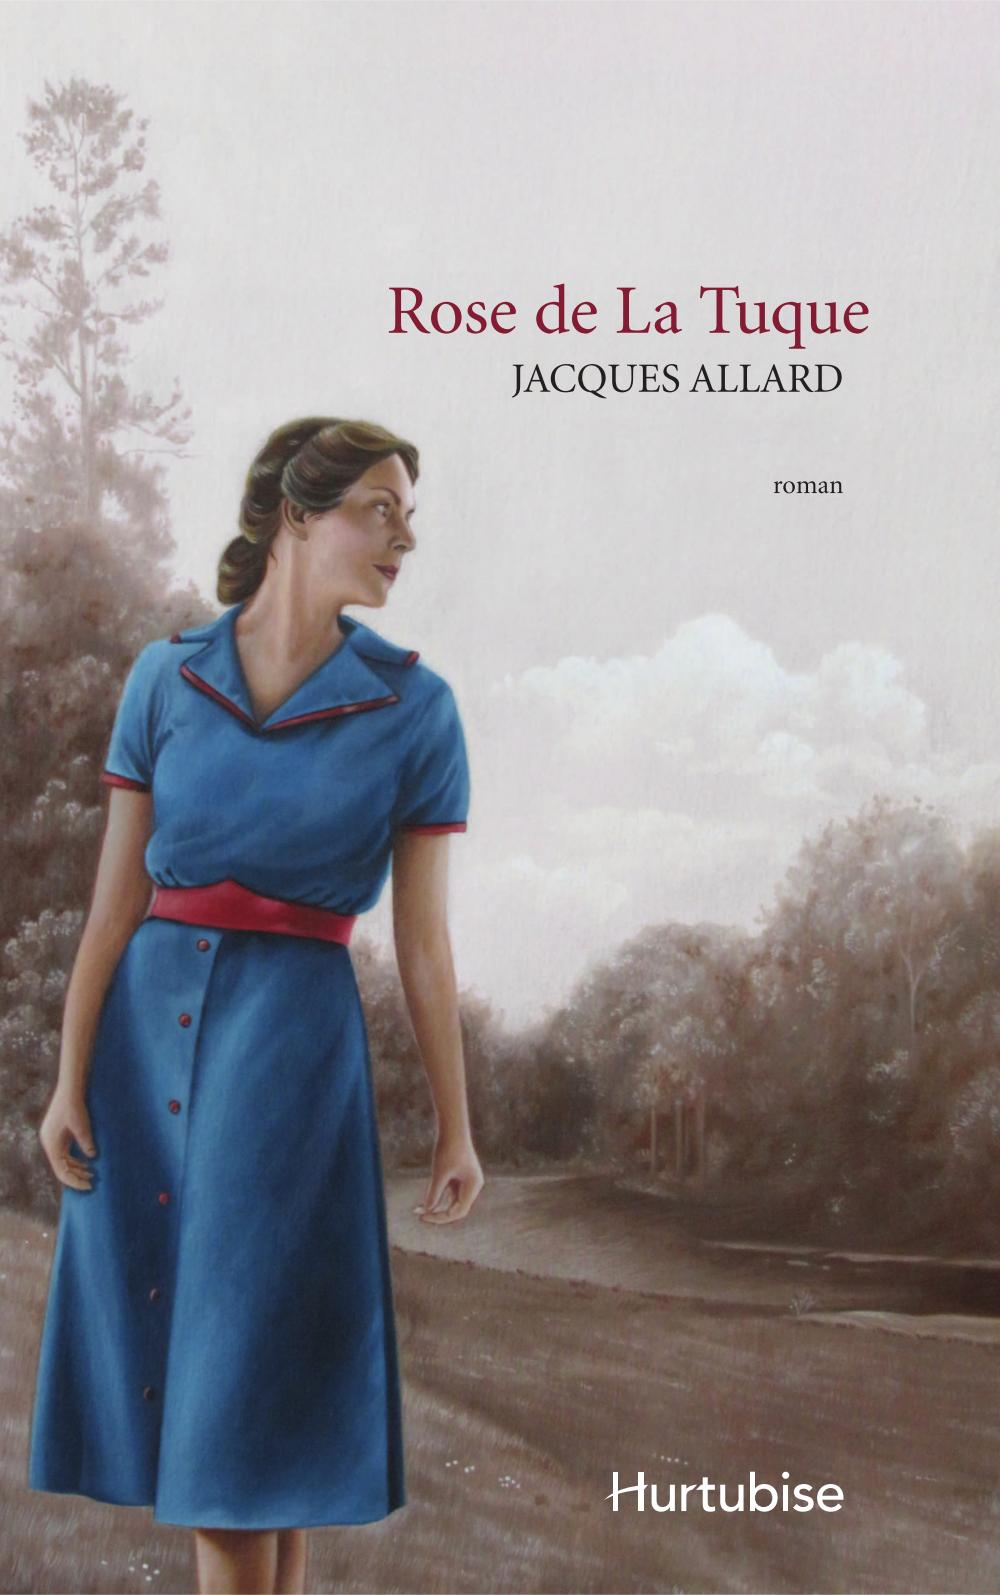 ROSE DE LA TUQUE